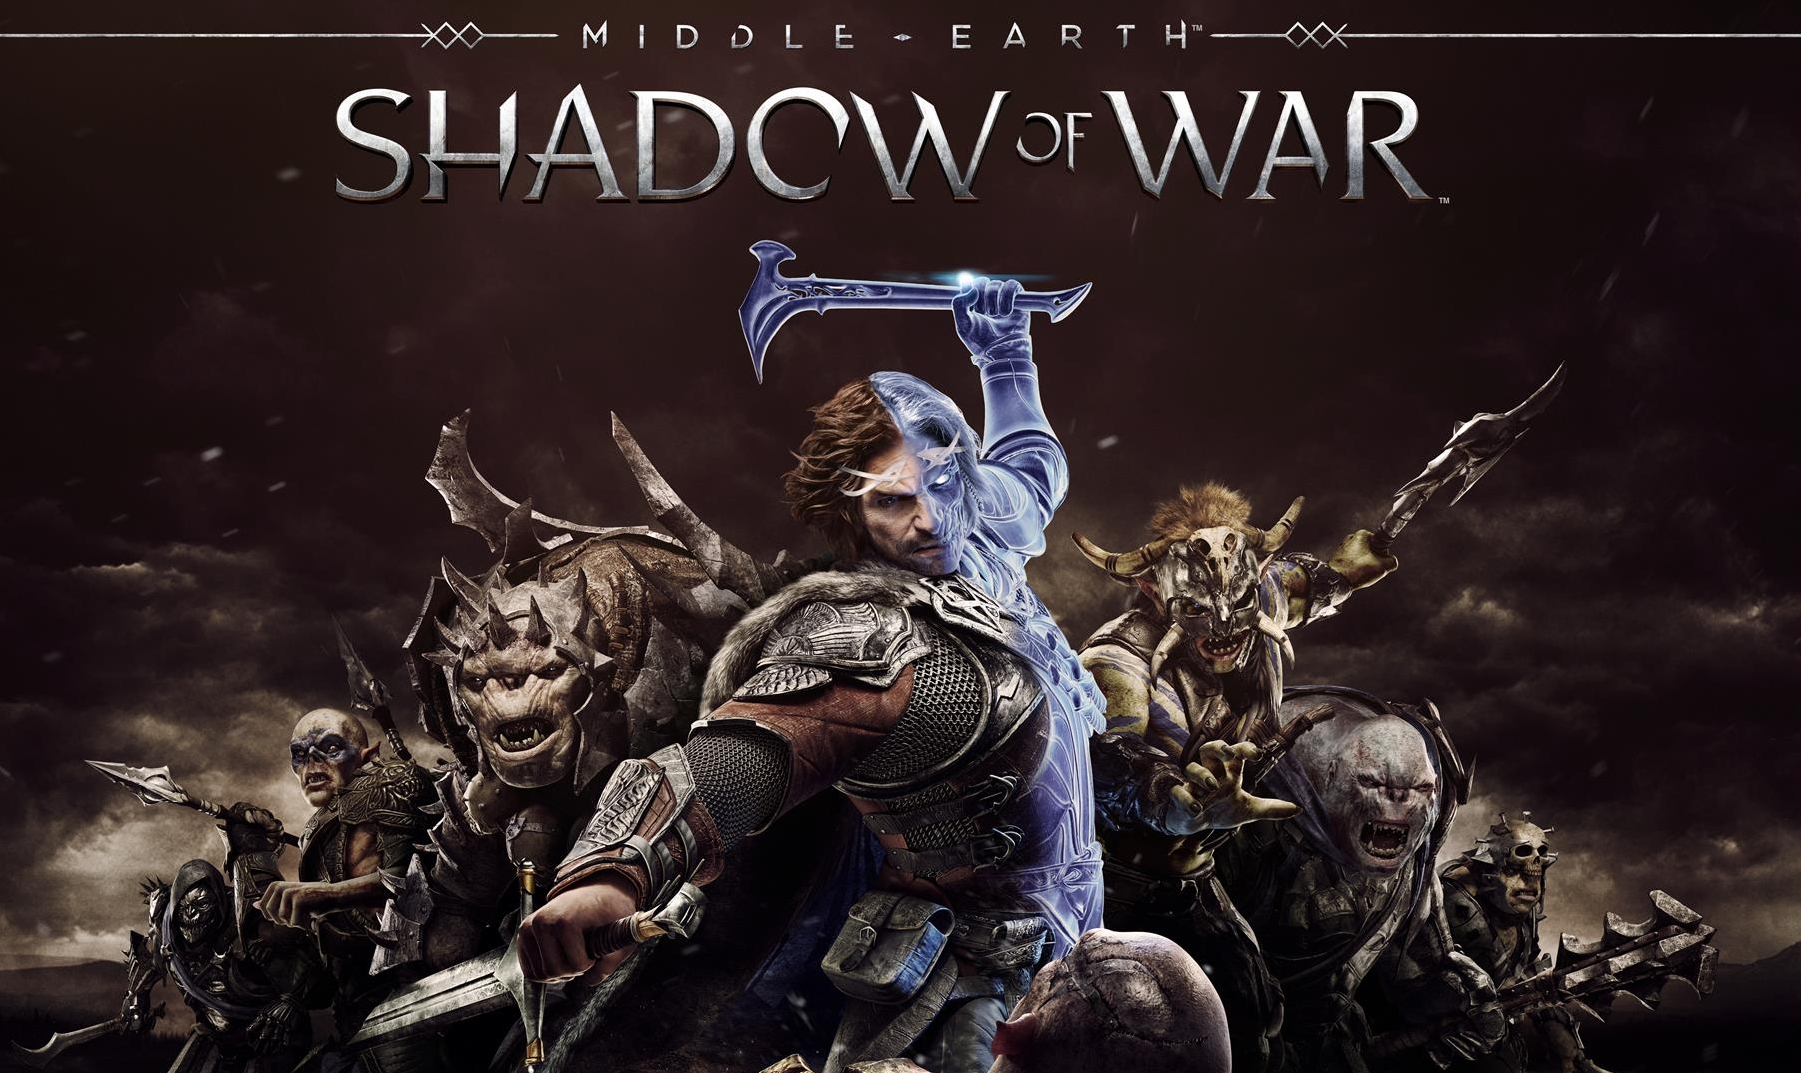 16 Minutes of Middle Earth: Shadow of Mordor